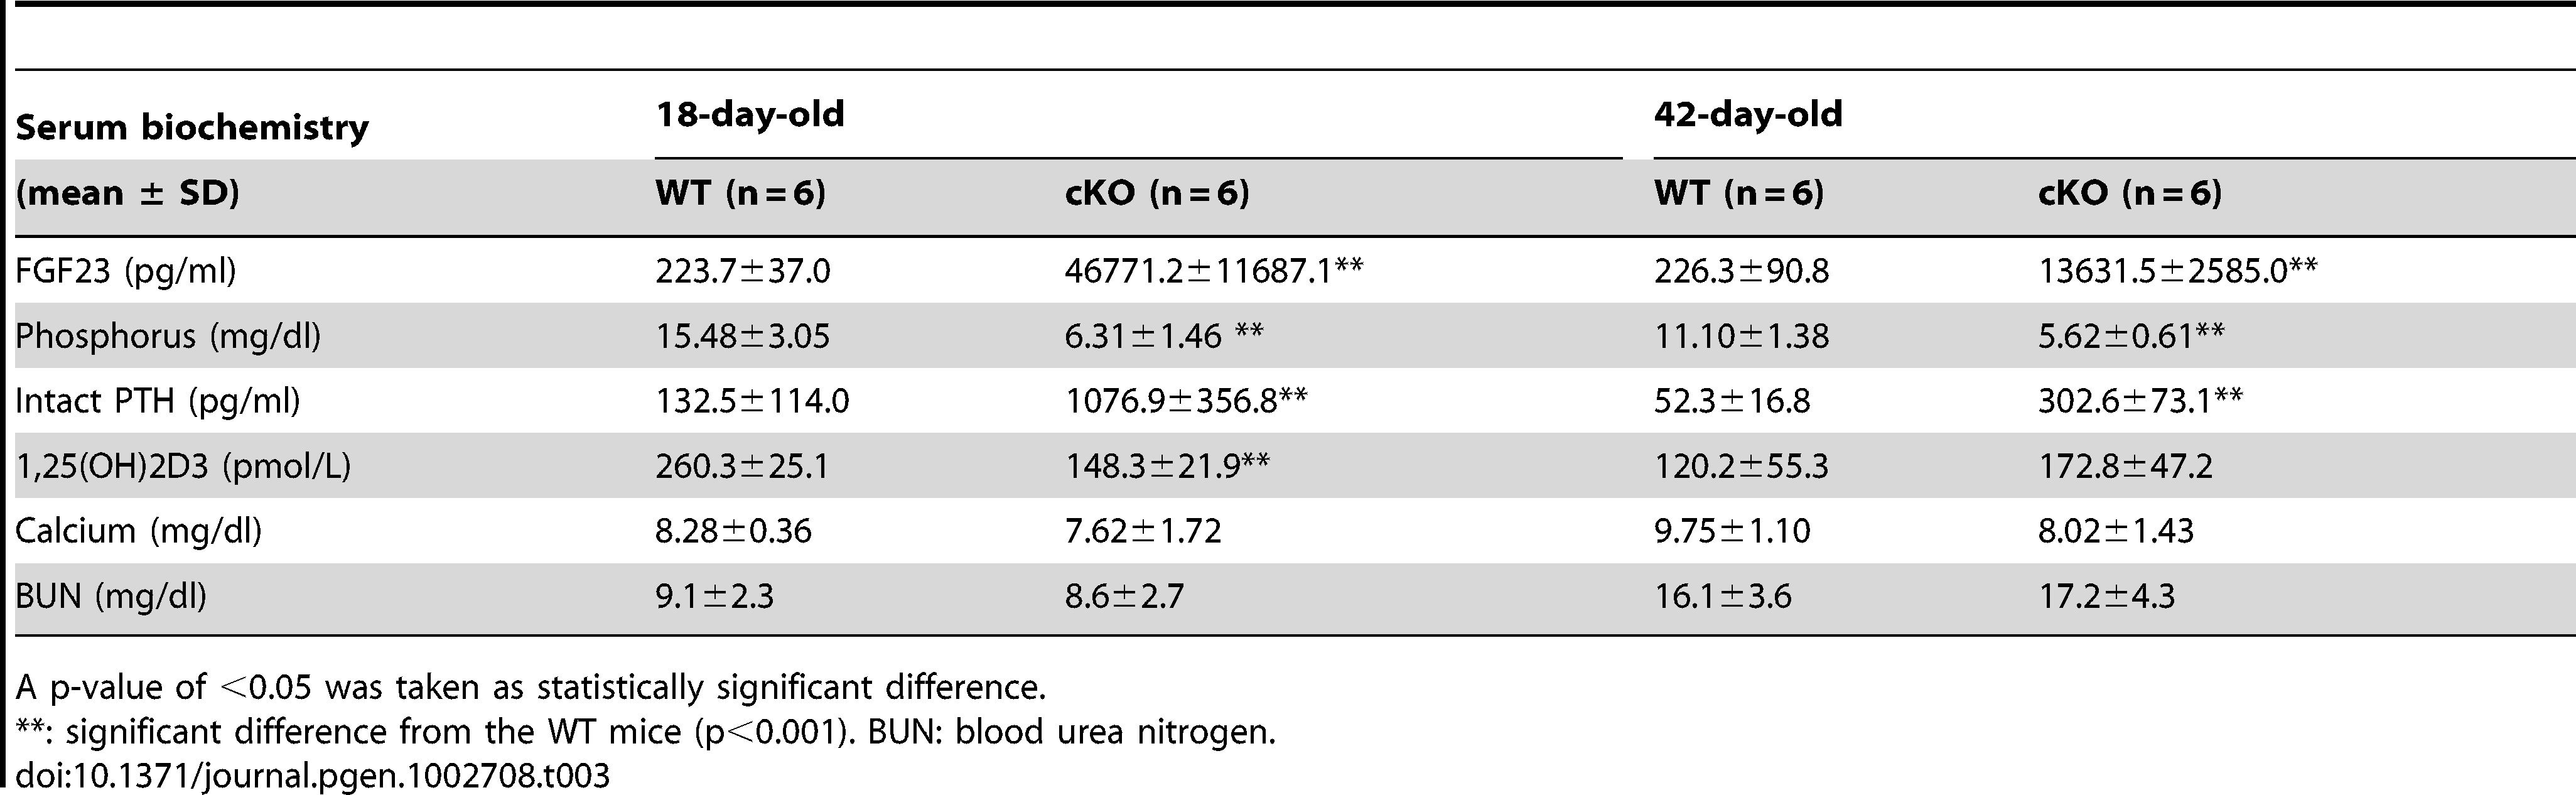 Serum biochemistry results in the 18-day-old and 42-day-old WT and <i>Fam20c</i>-cKO mice.